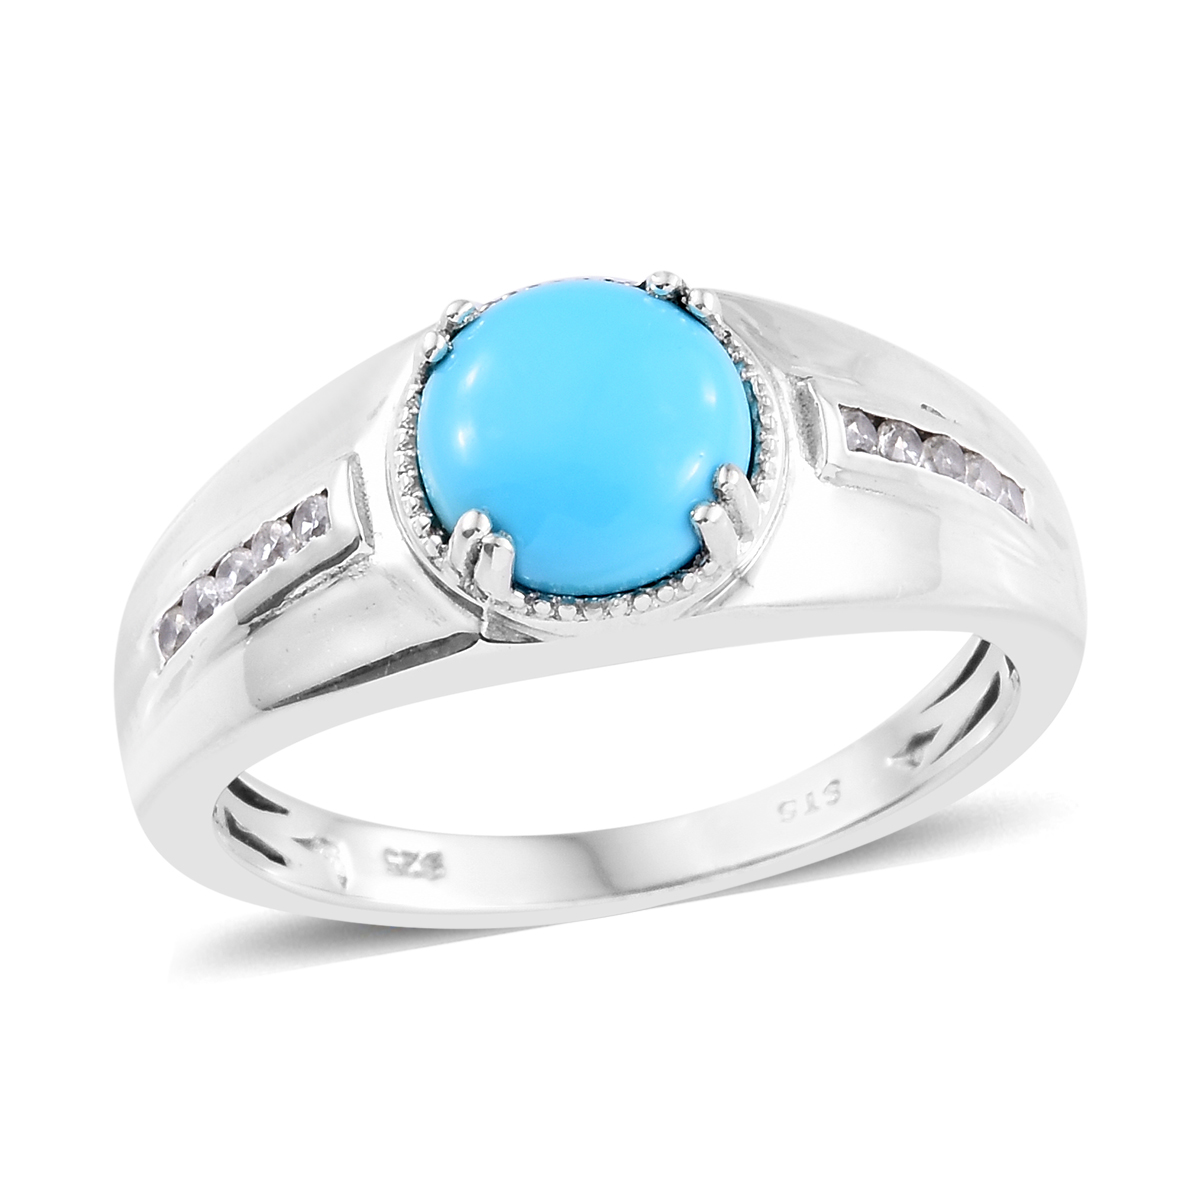 8821d164a491ba Arizona Sleeping Beauty Turquoise, Cambodian Zircon Men's Ring in Platinum  Over Sterling Silver (Size 11.0) 2.70 ctw | Shop LC